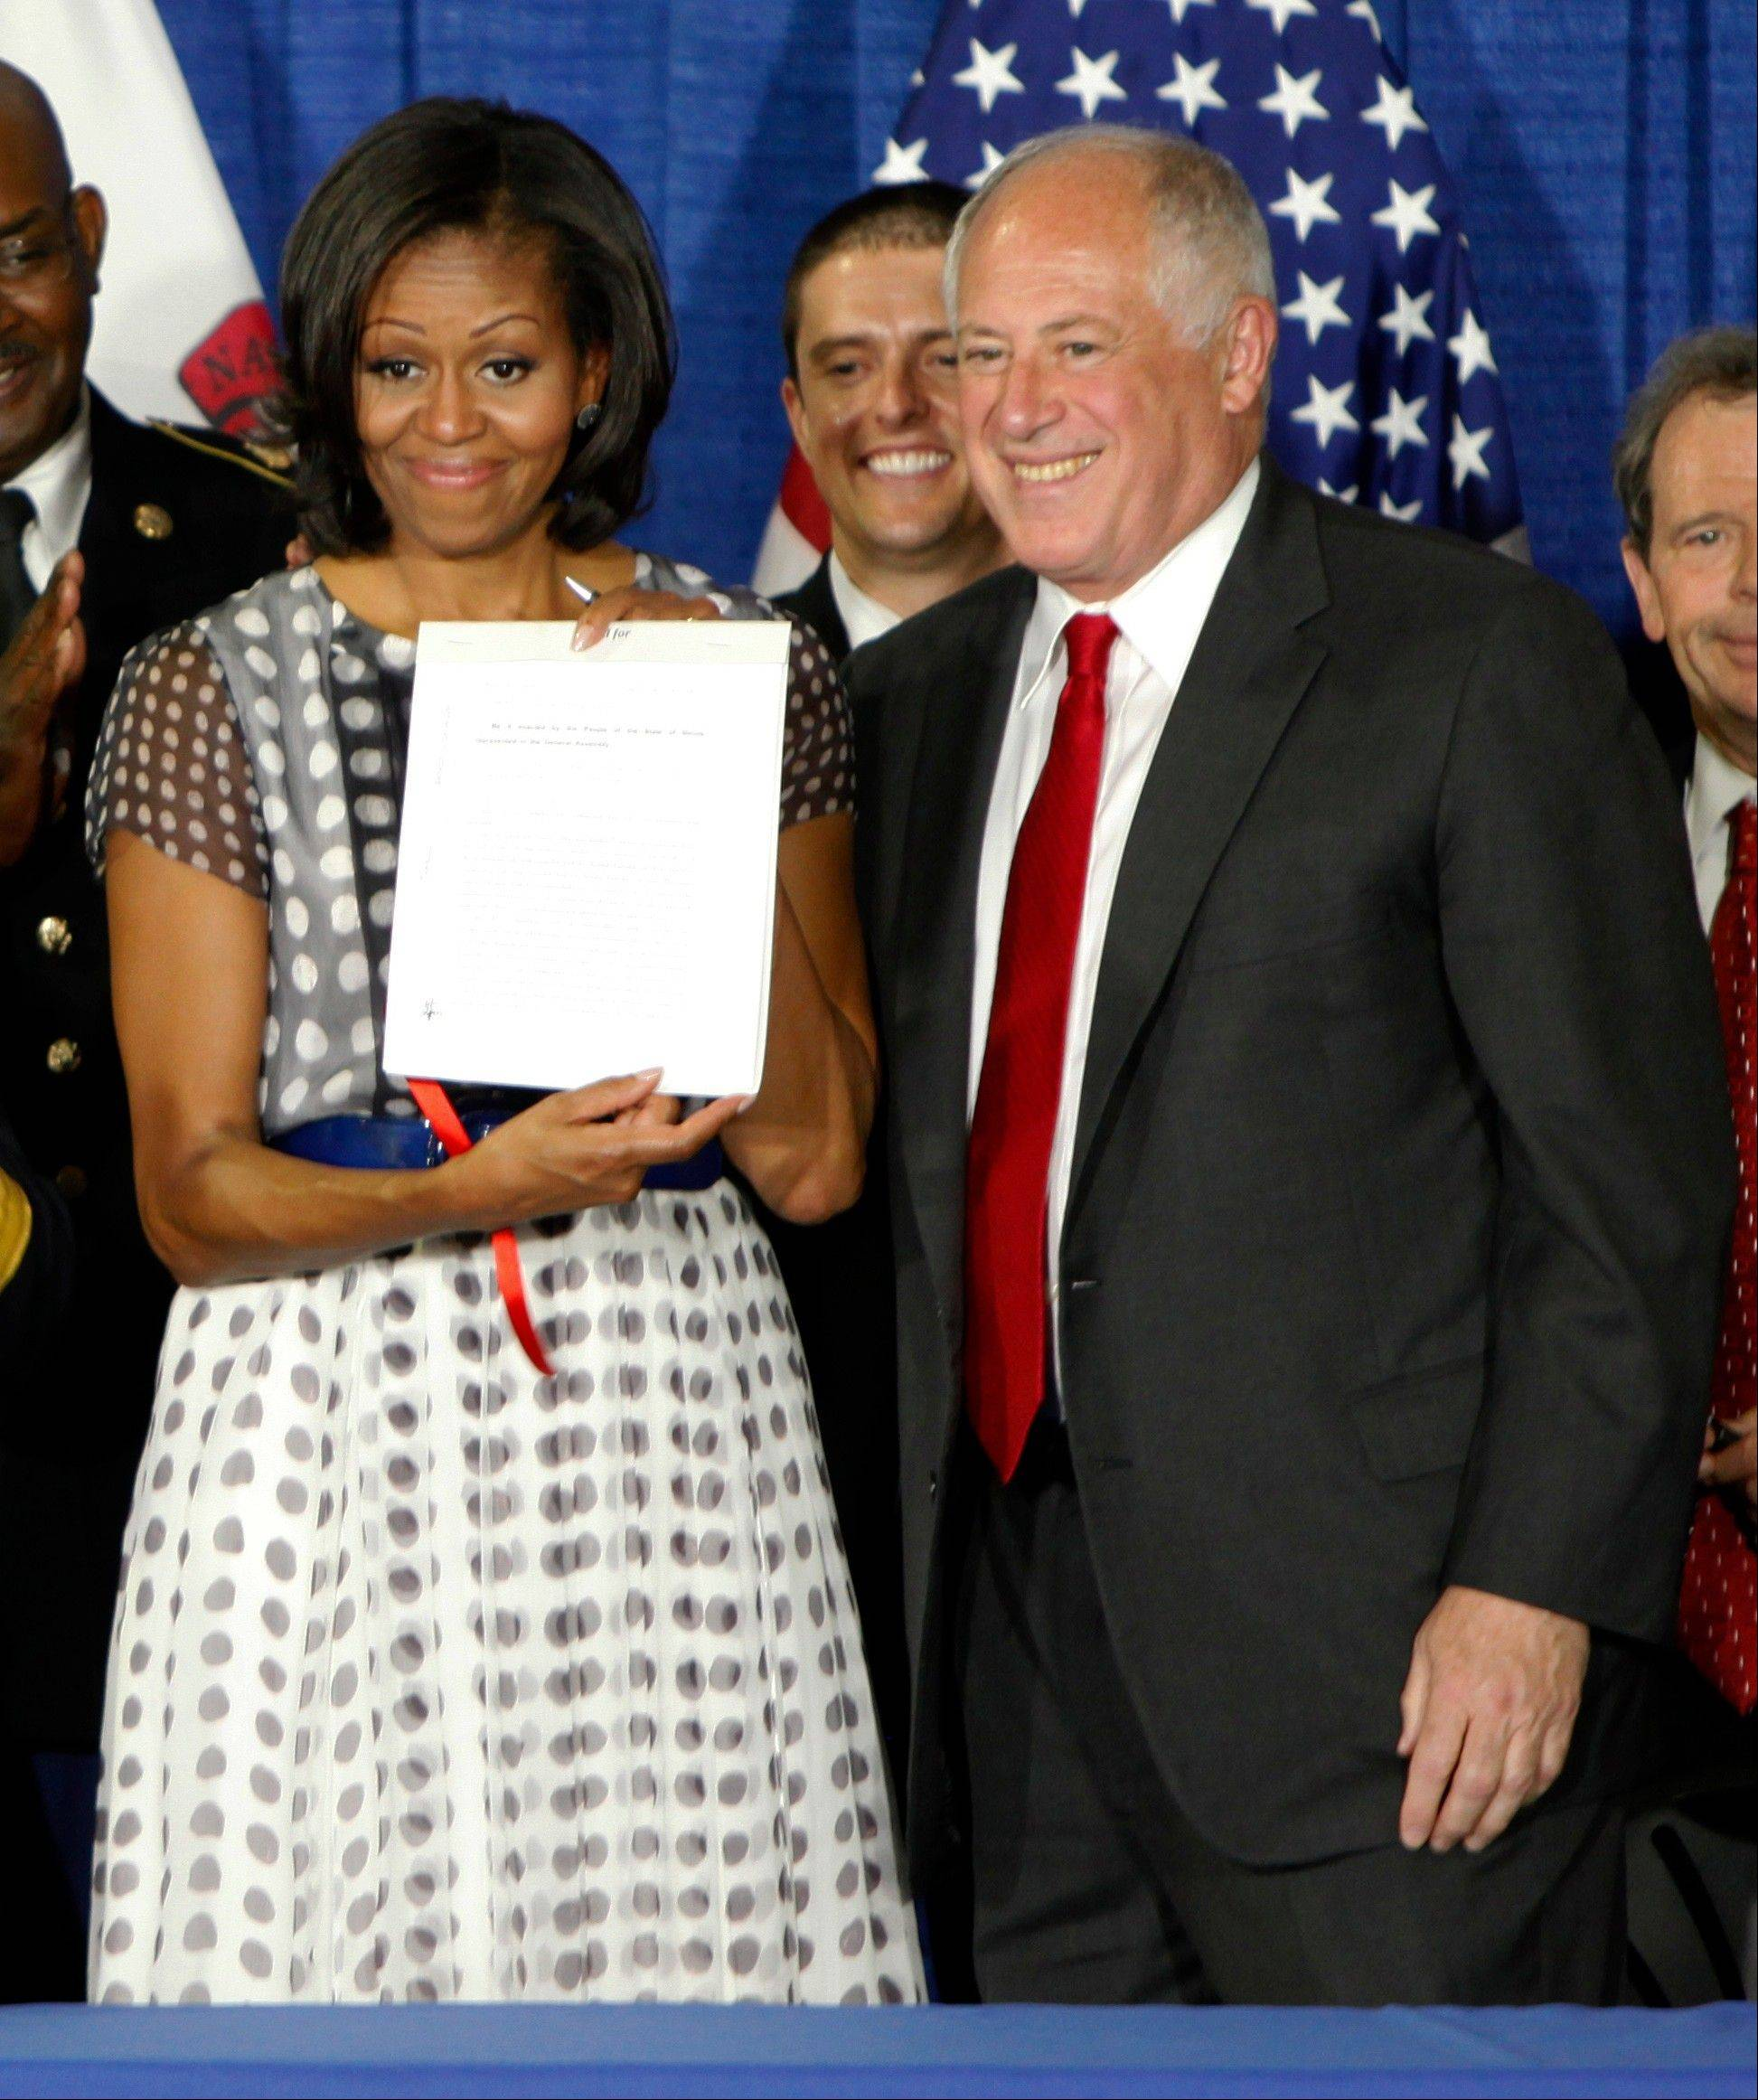 first lady Michelle Obama stands with Gov. Pat Quinn after Illinois becomes the 23rd state to enact a law allowing military personnel and their spouses a quicker transfer of their professional licenses to Illinois during a military relocation.